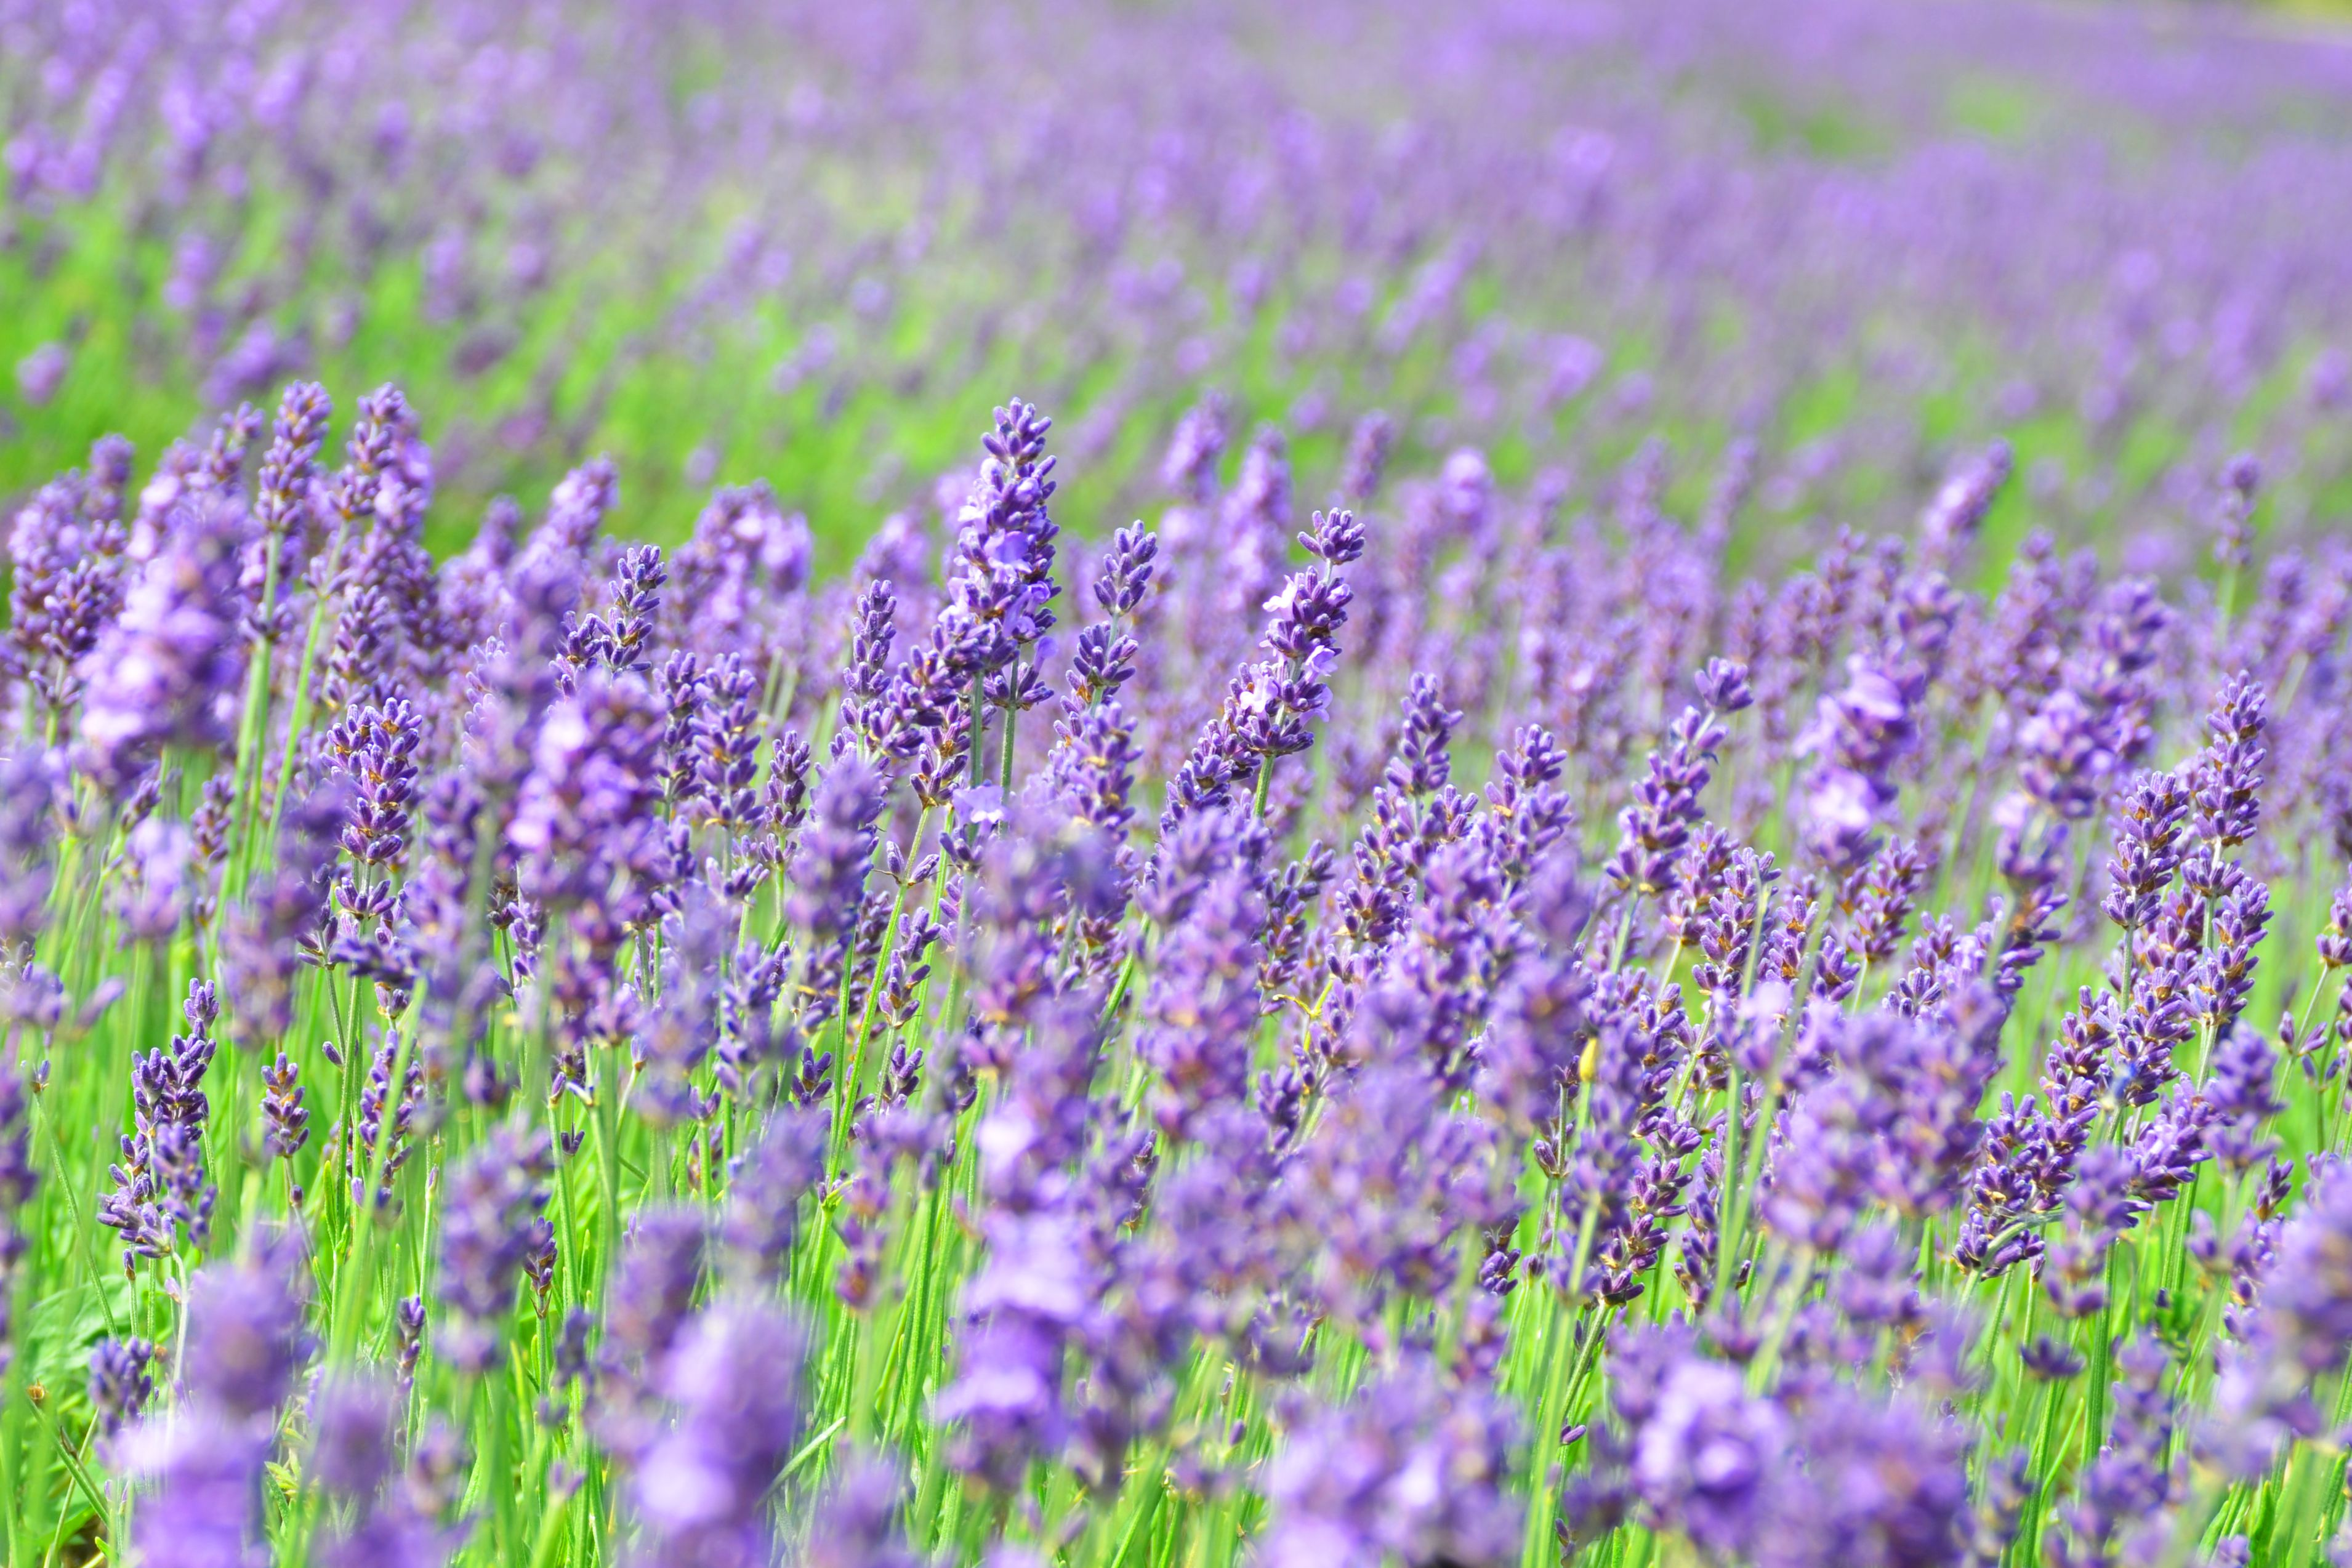 Close-up view of lavender in field, Norfolk, UK